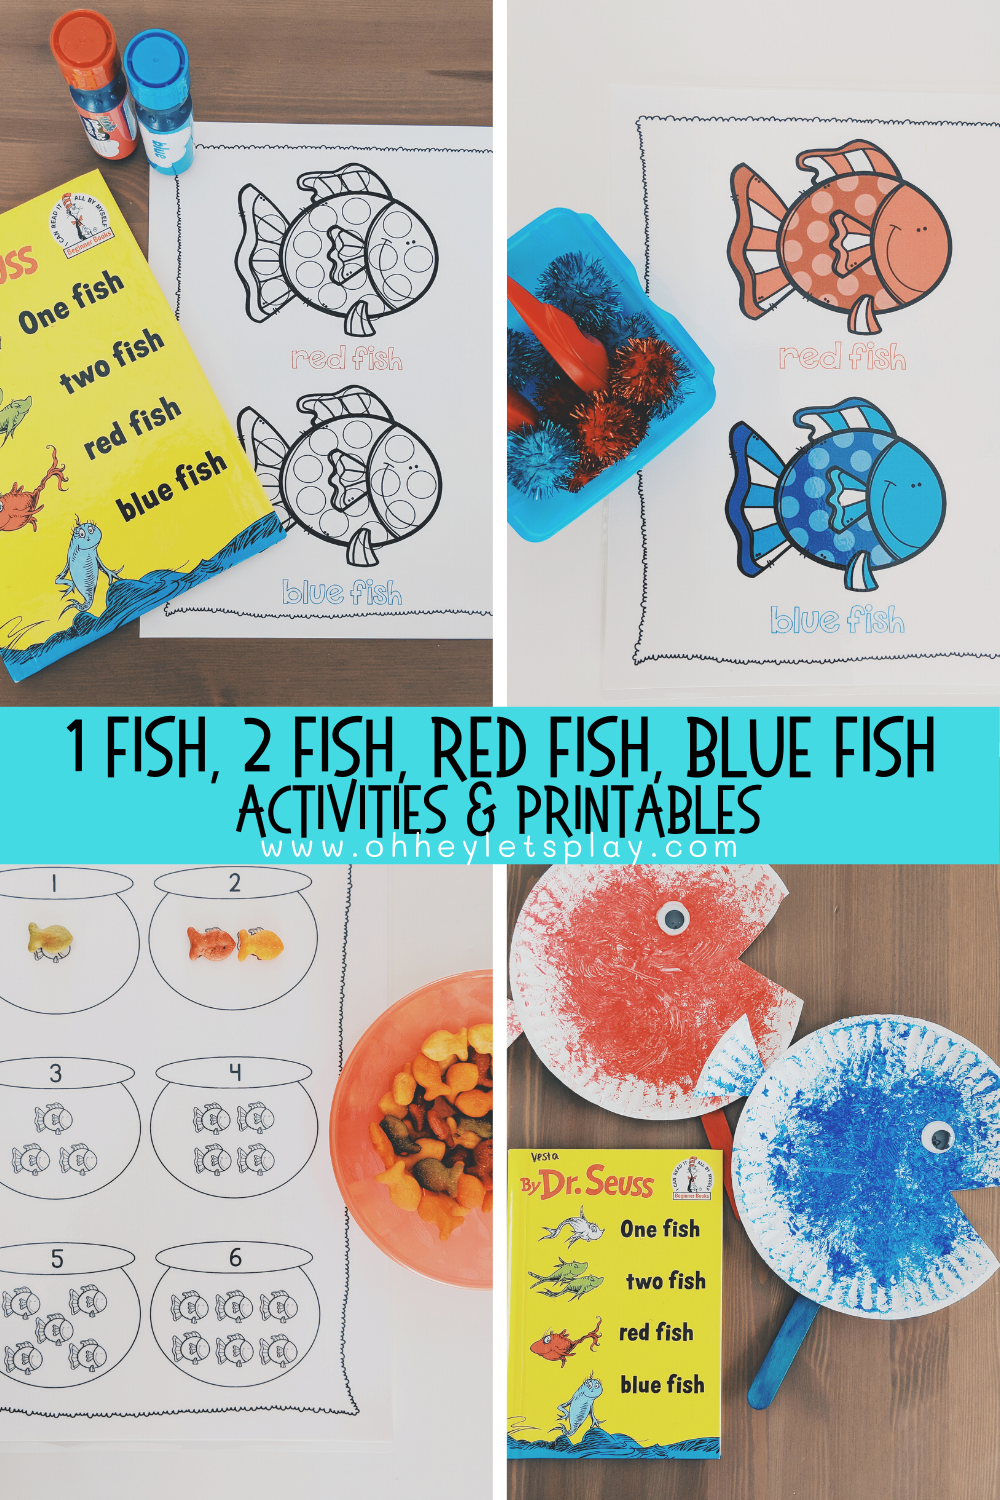 graphic regarding One Fish Two Fish Printable referred to as Purple Fish, Blue Fish Dr. Seuss Functions Printables